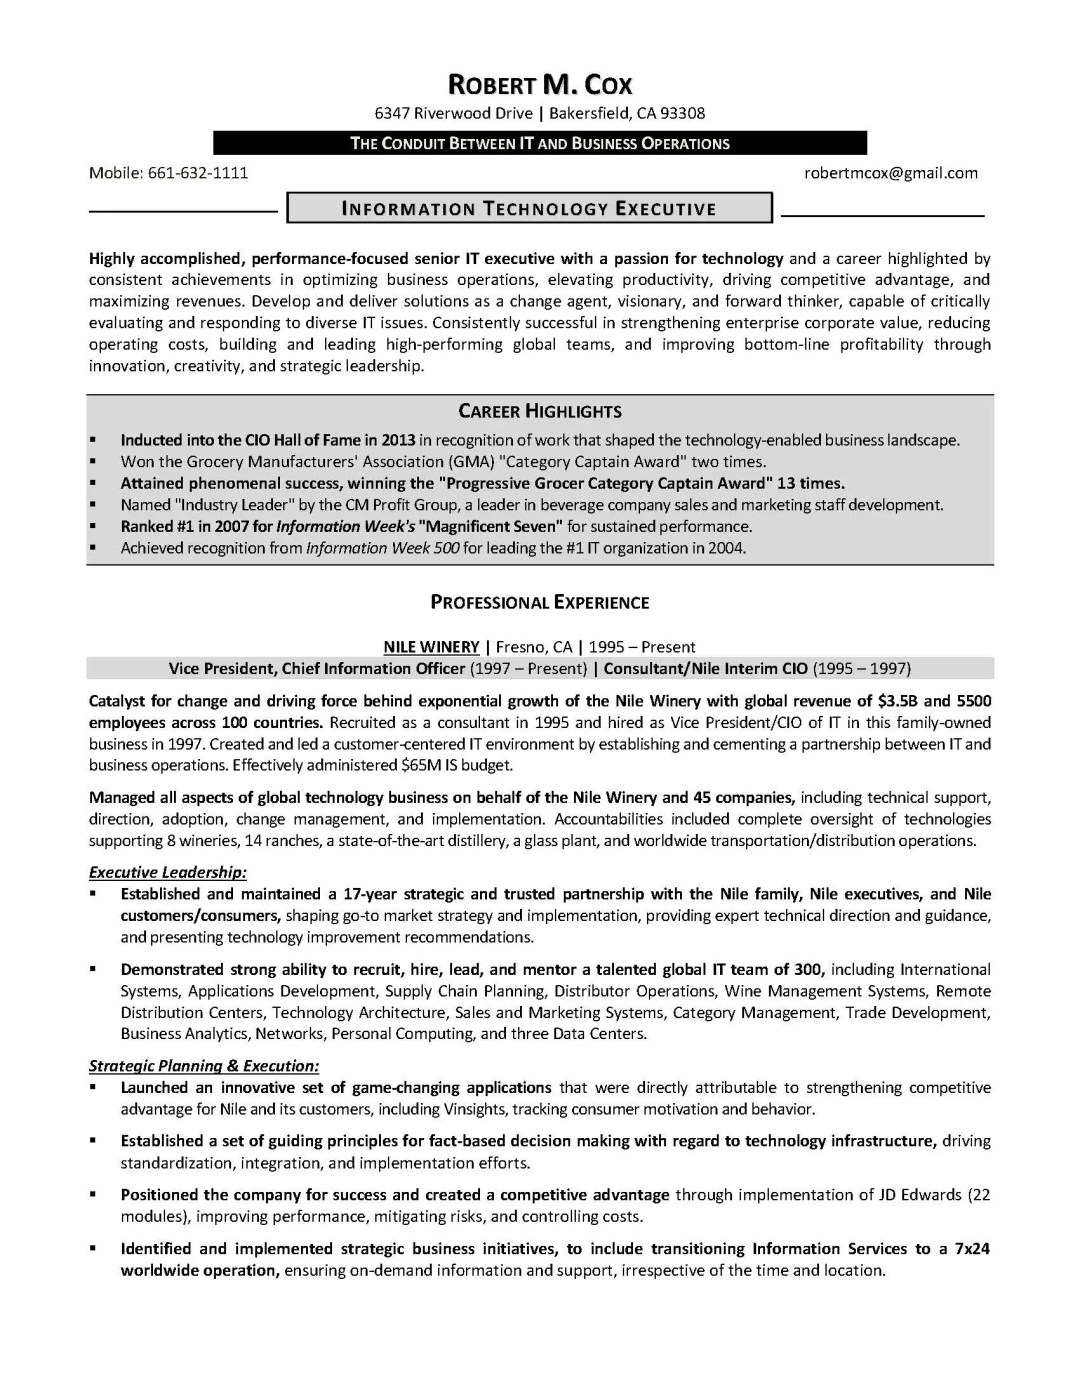 Technology resume writing services